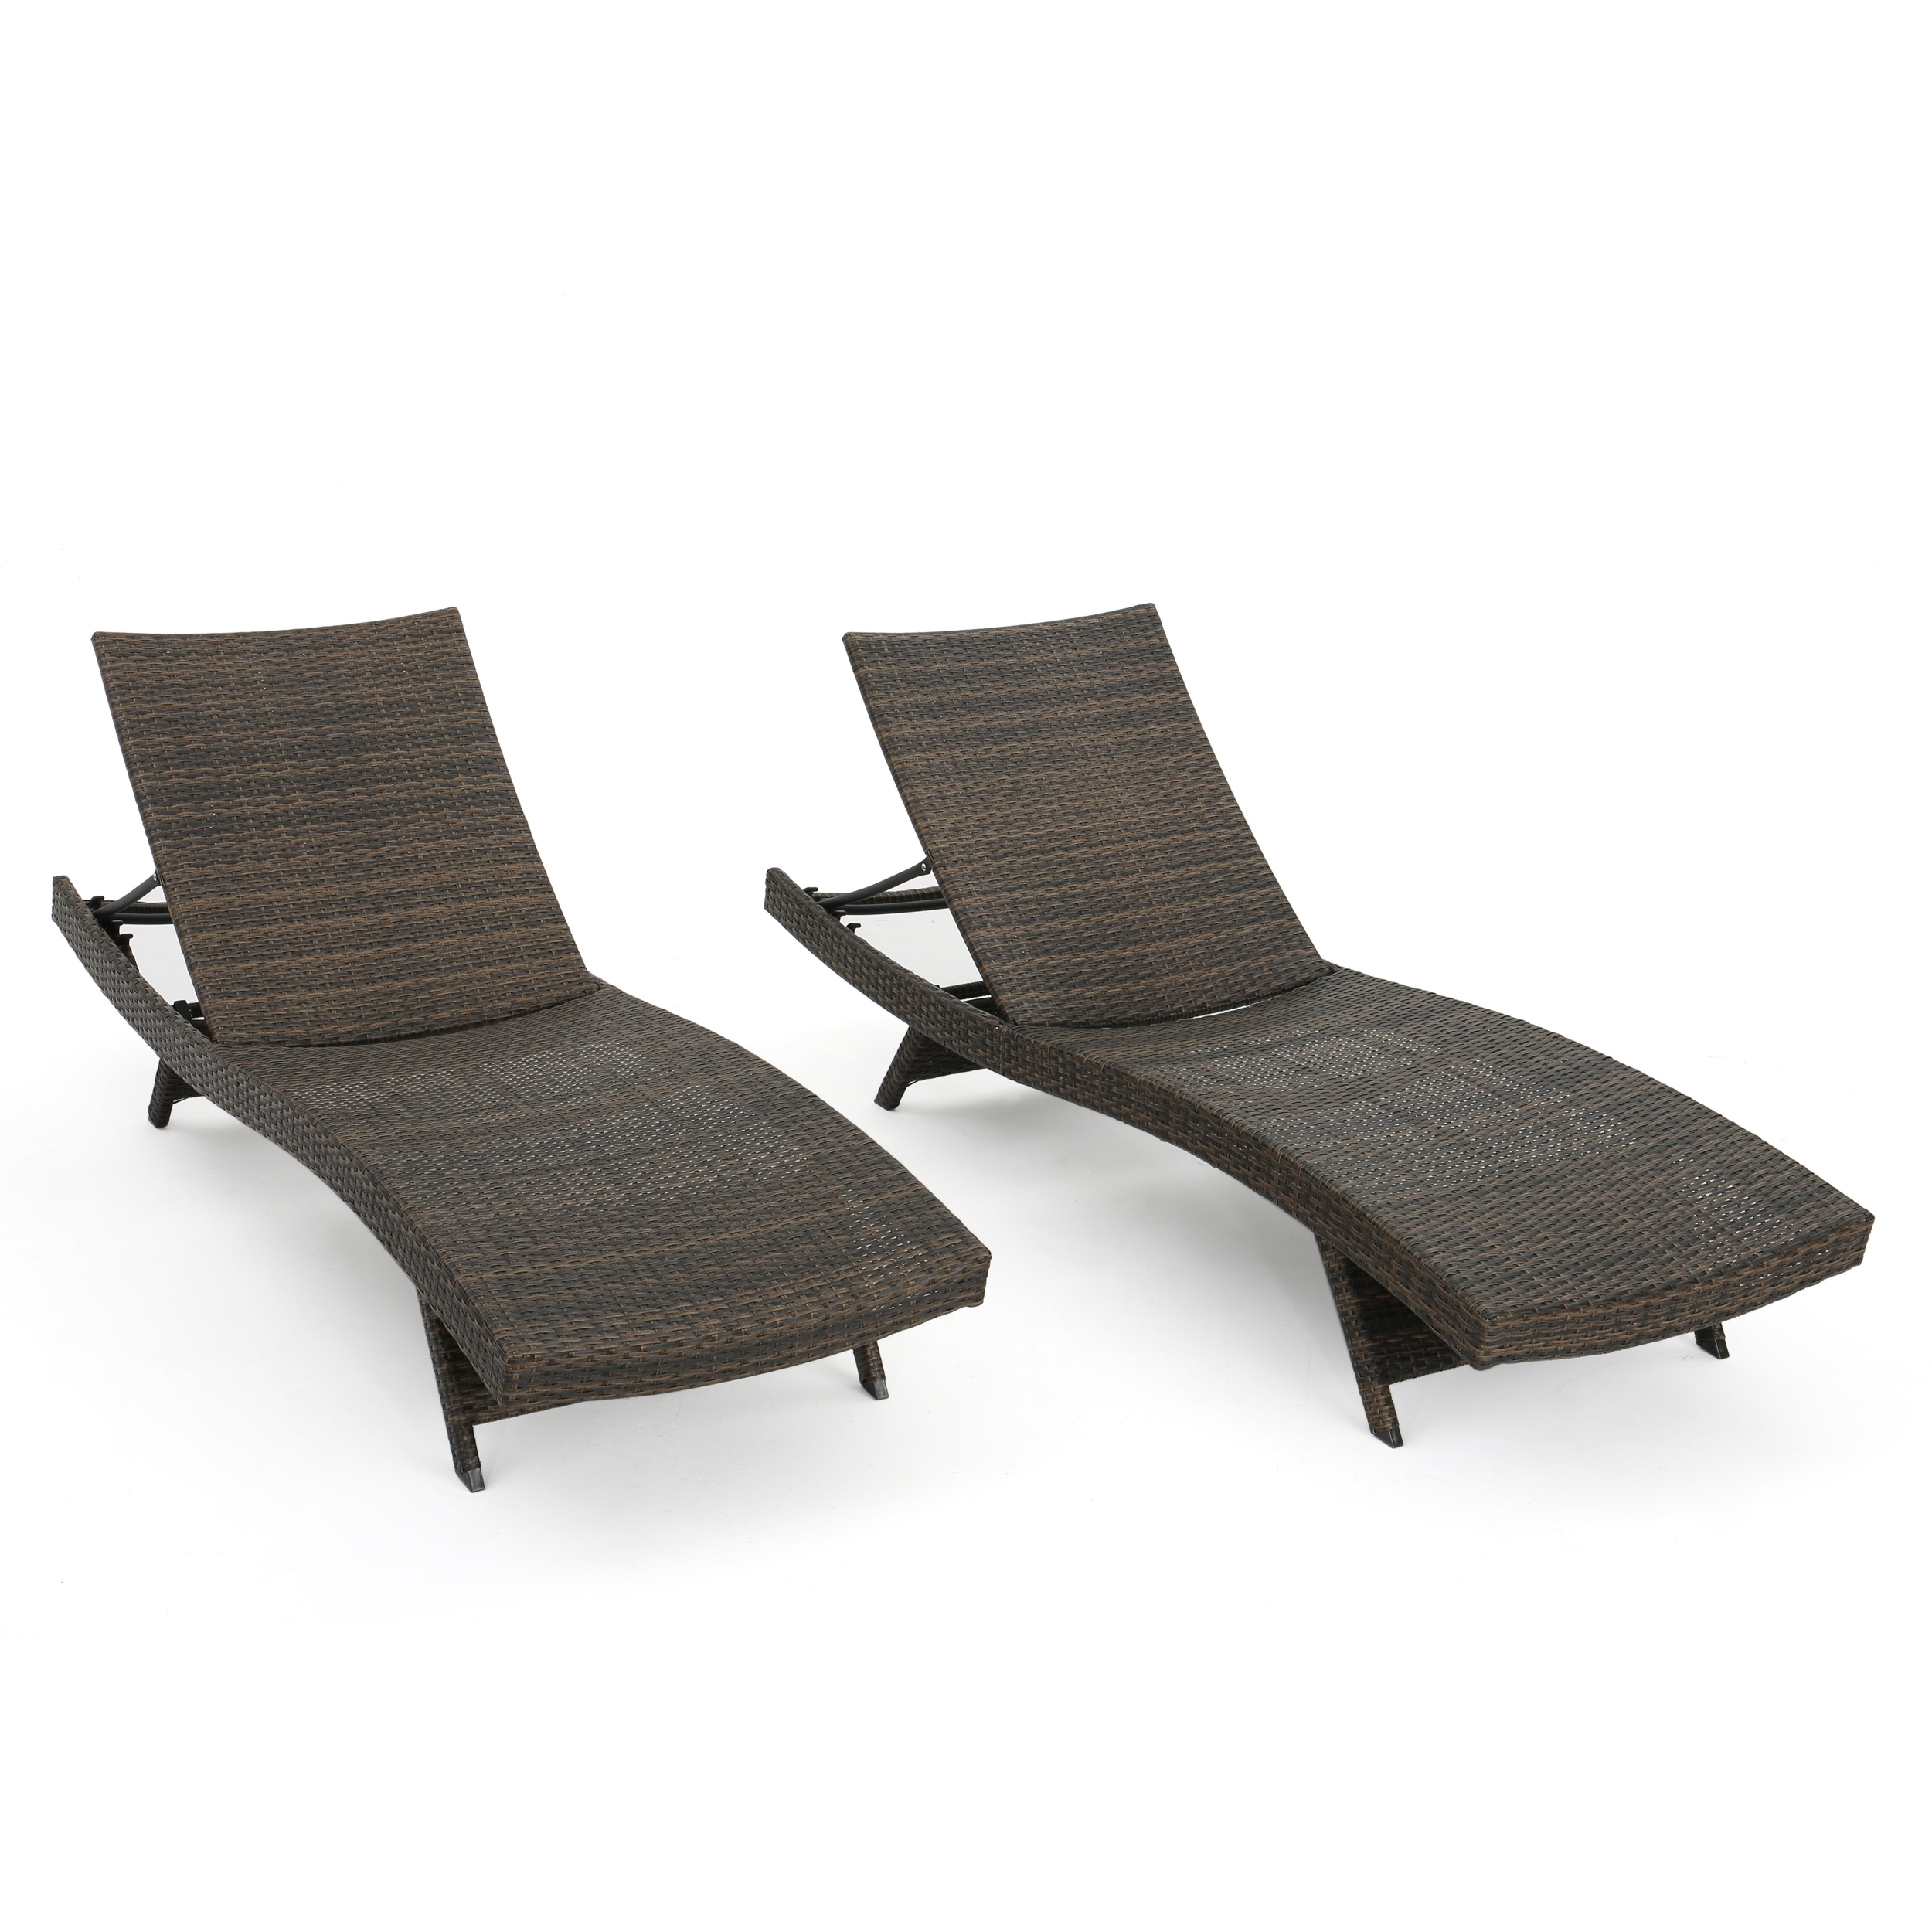 Most Recent Outdoor Wicker Chaise Lounge Chairs With Details About Thira Outdoor Wicker Chaise Lounge Chair (View 15 of 25)